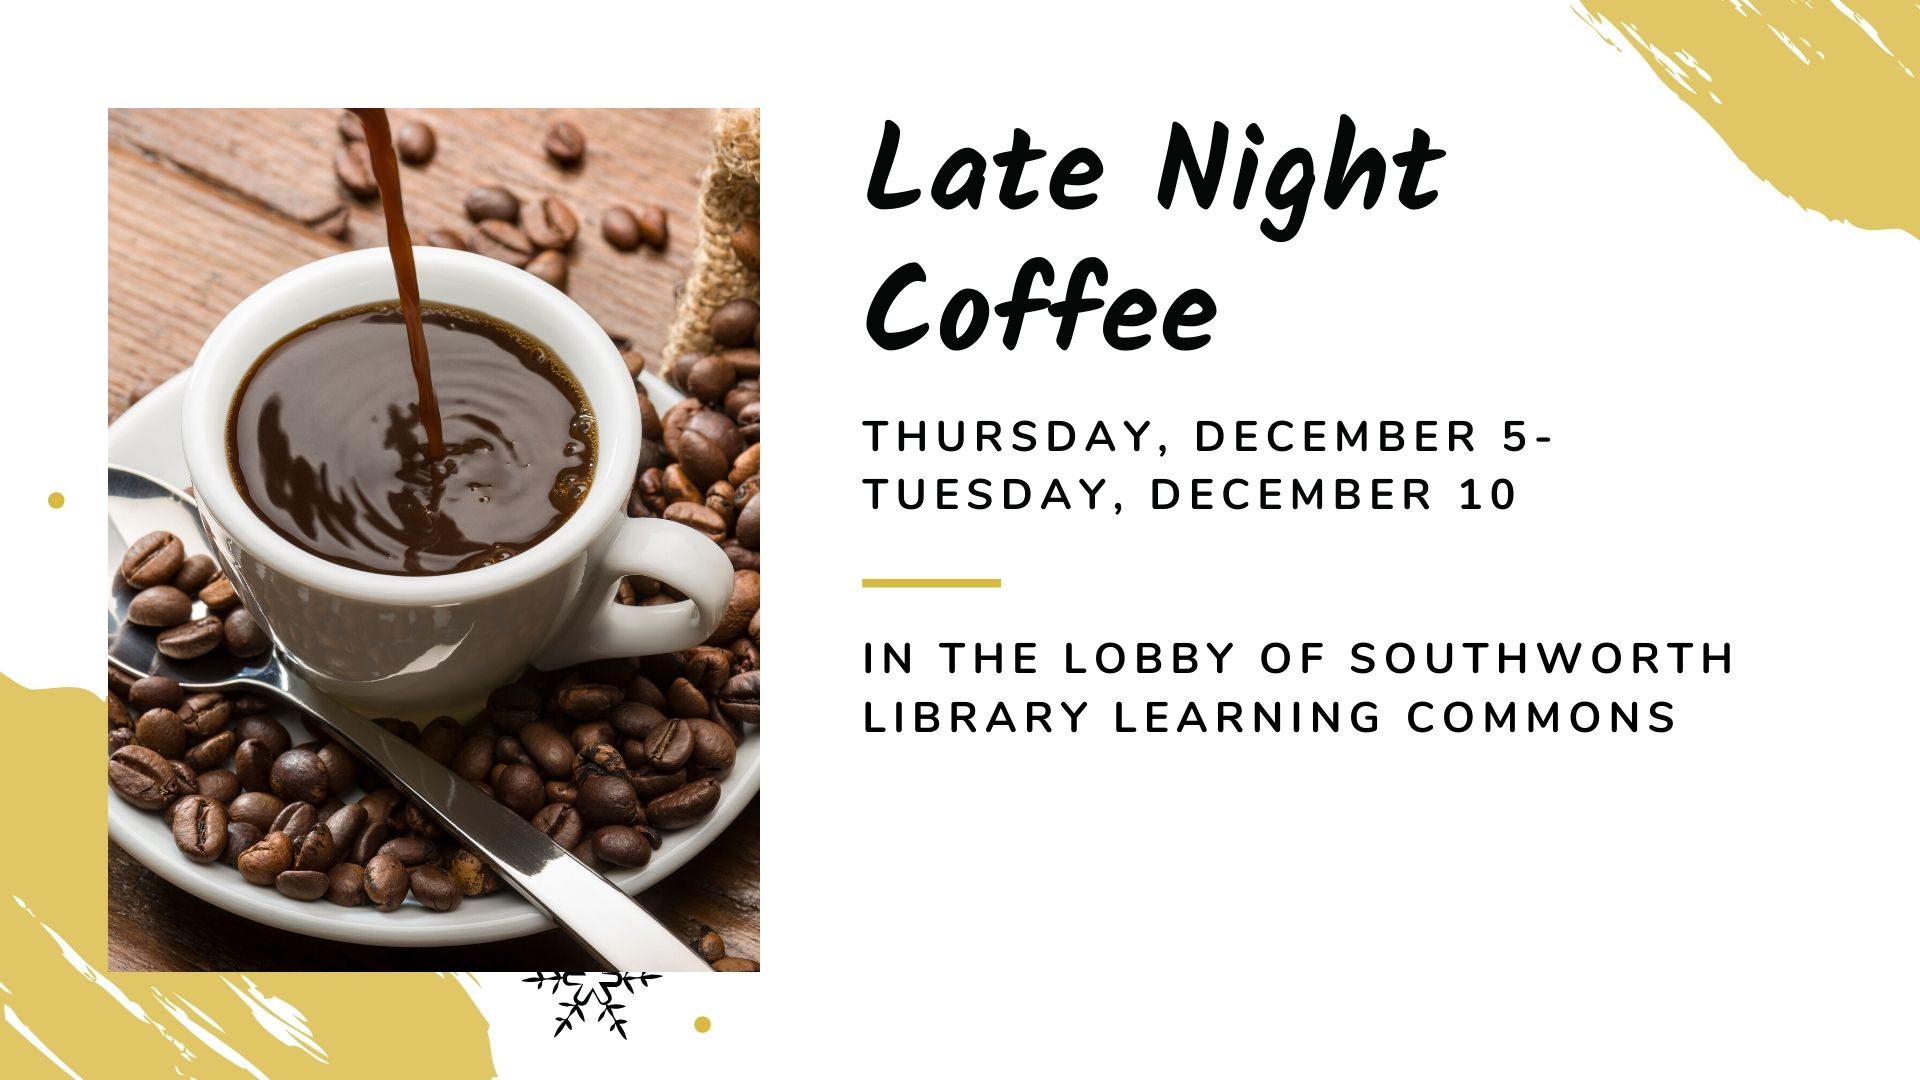 Late Night Coffee Thursday December 5 to Tuesday December 10, in the lobby of Southworth Library Learning Commons